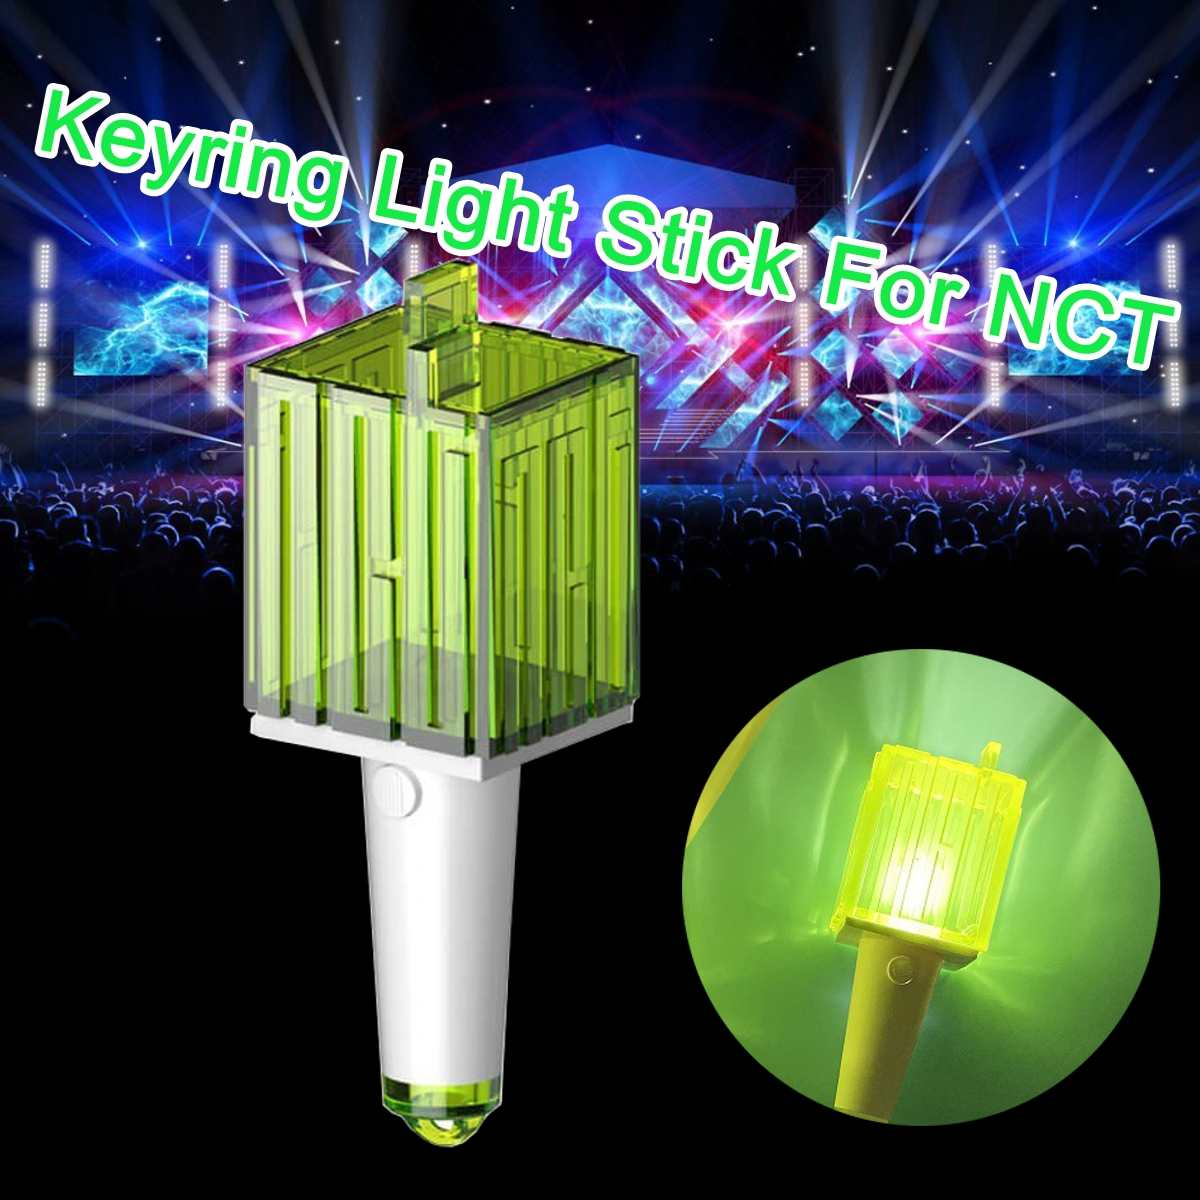 LED FOR NCT Kpop Stick Lamp Lightstick Music Concert Lamp Fluorescent Stick Aid Rod Fans Gift Stationery Set